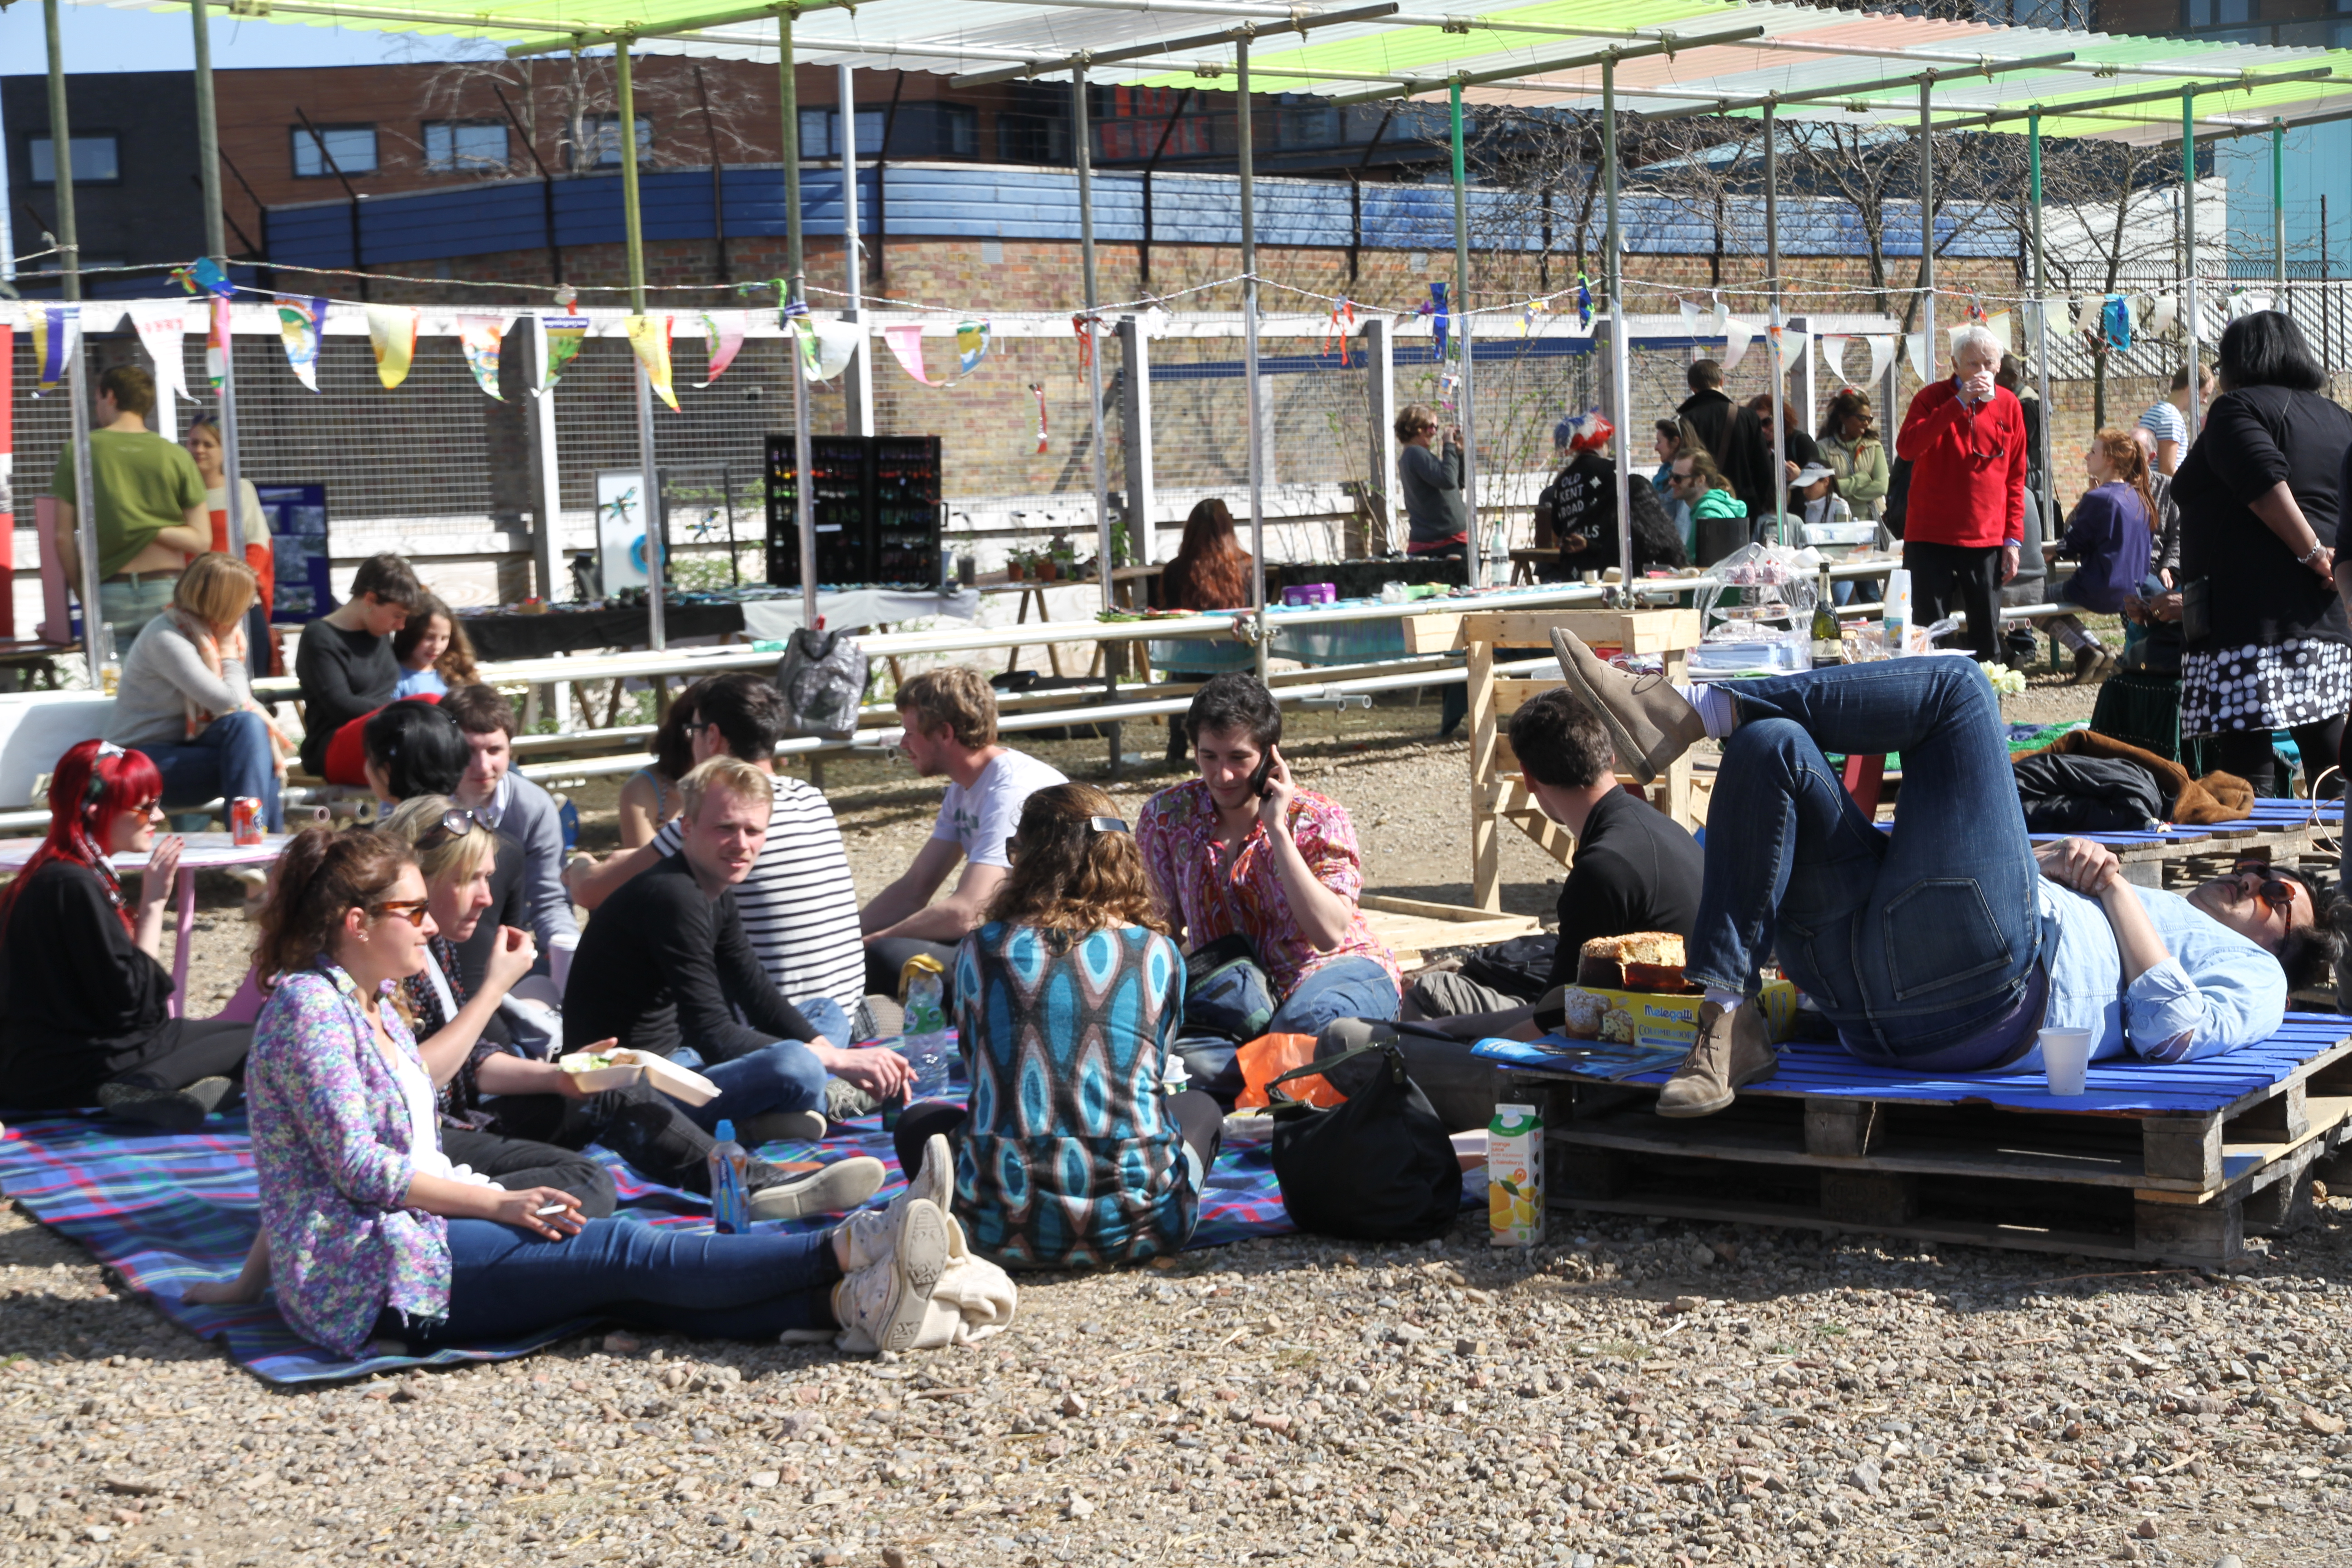 Architects' Journal takes a tour of Canning Town Caravanserai